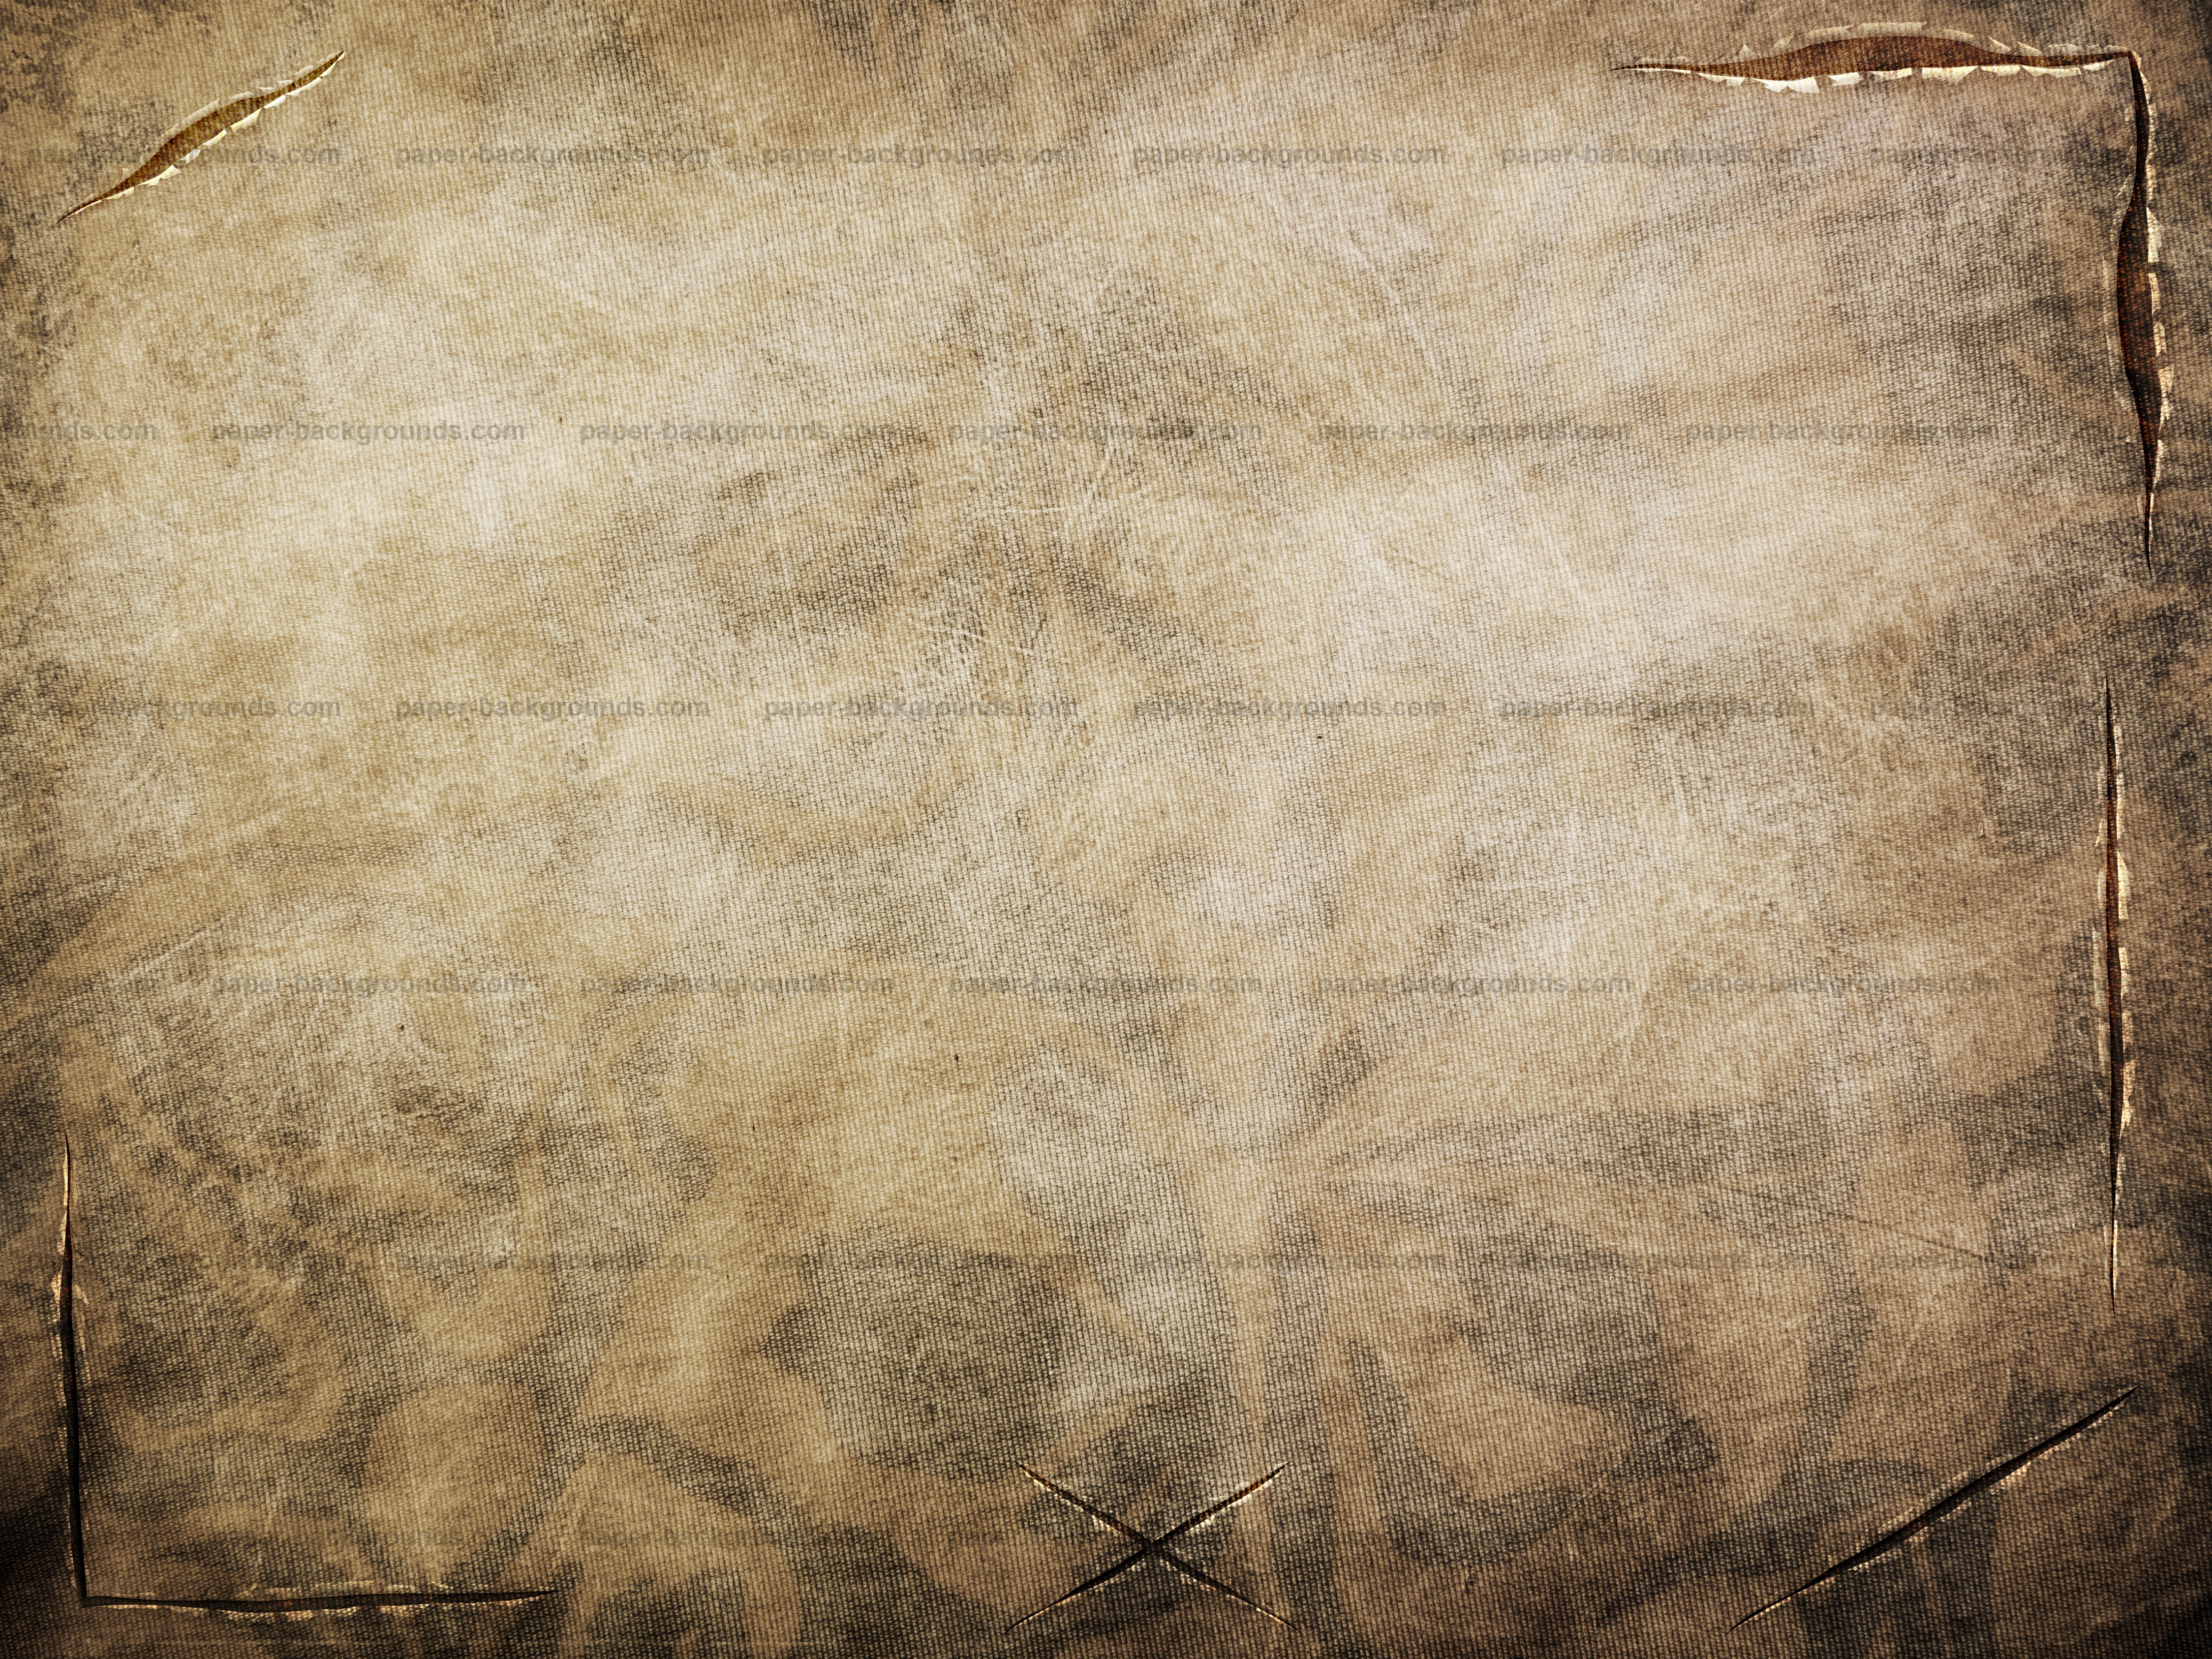 Vintage Brown Fabric Texture With Tears